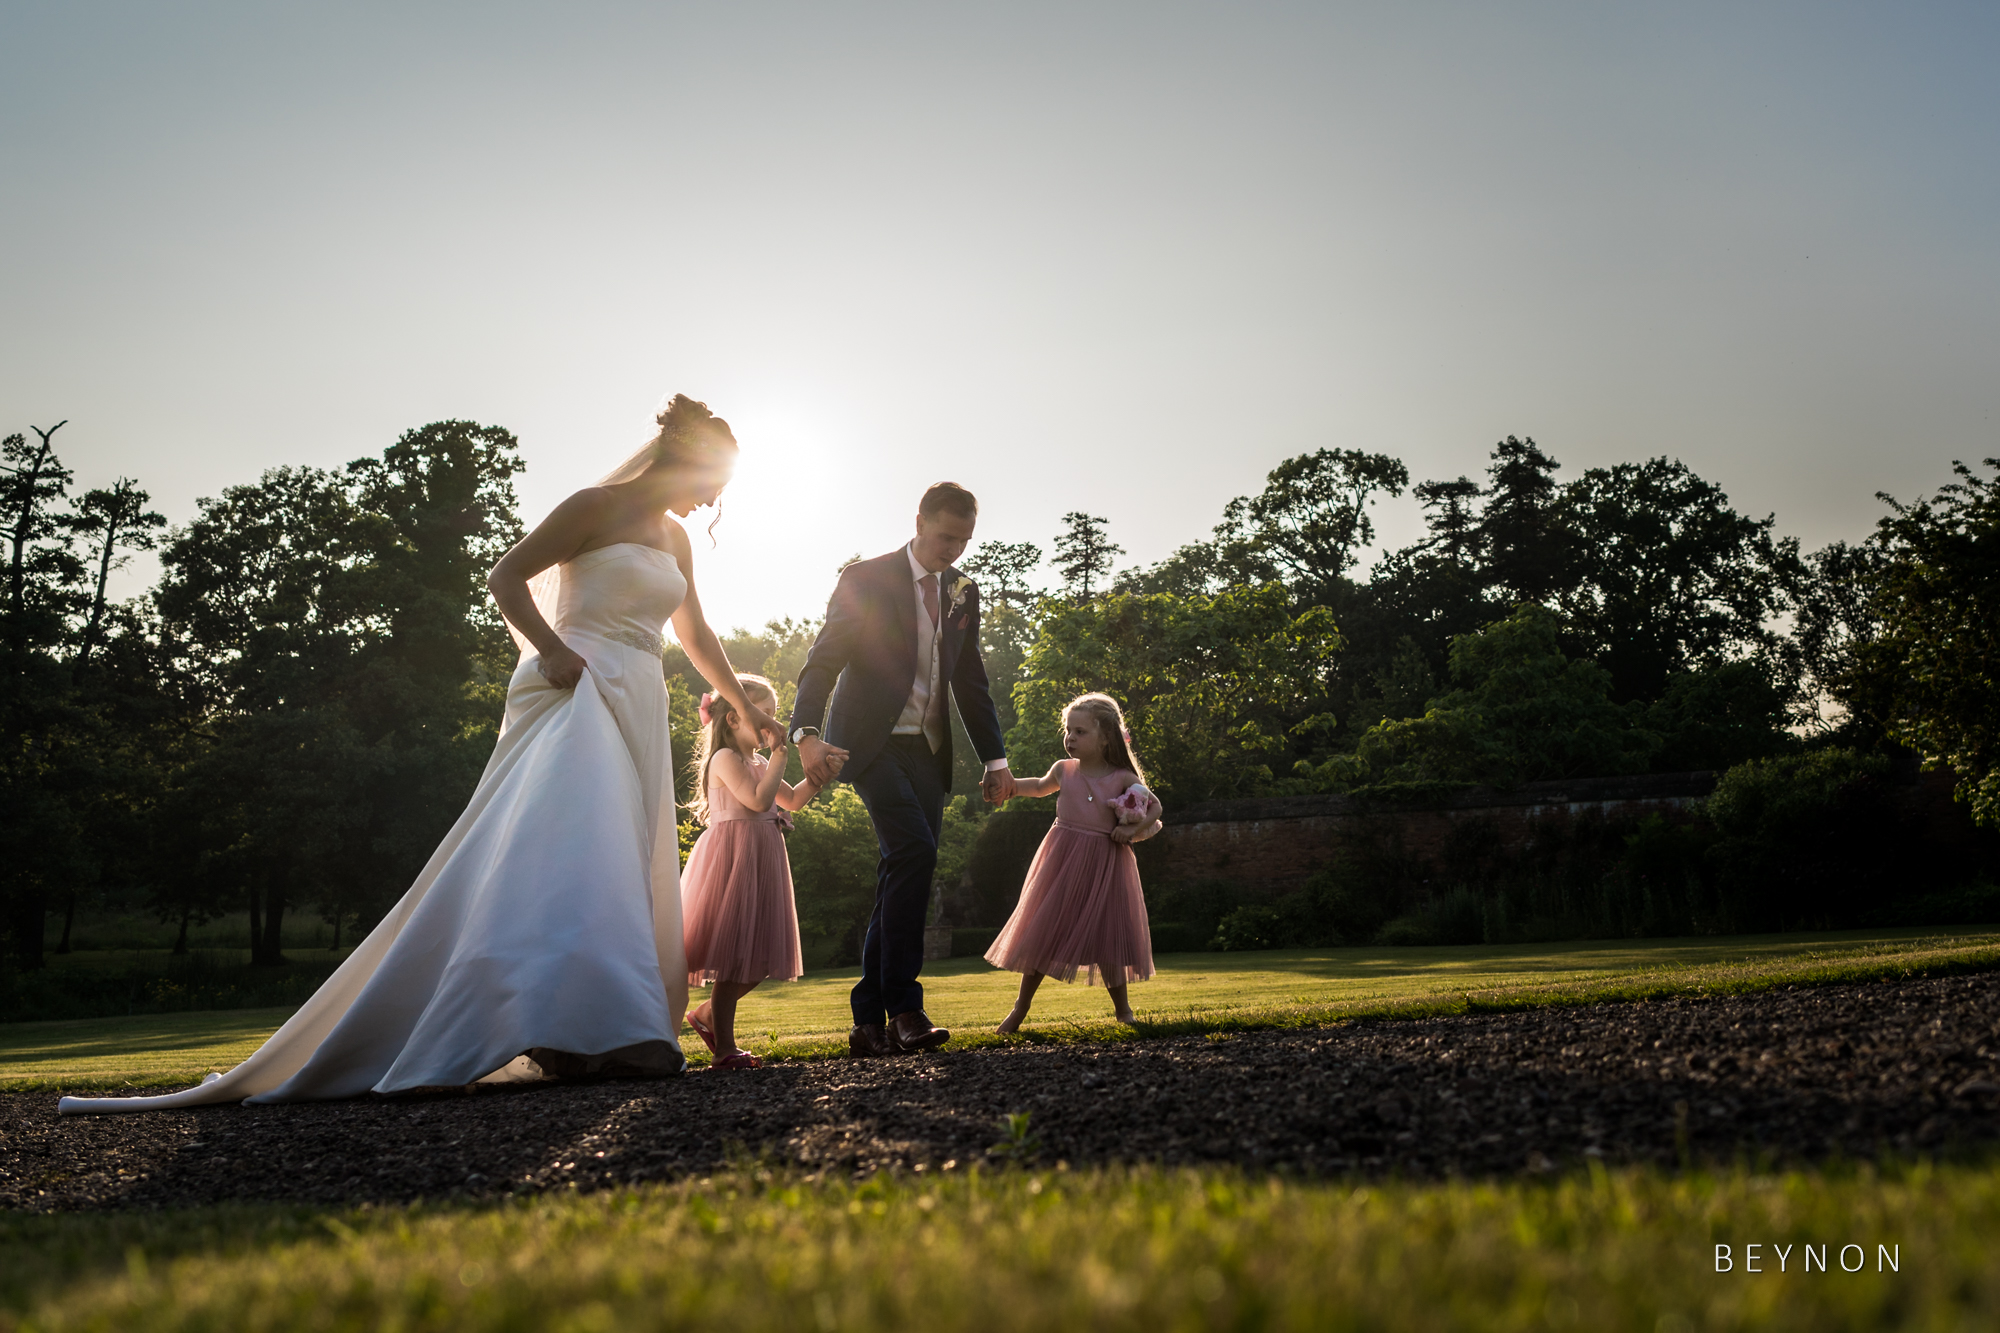 The bride and groom walk with the flower girls